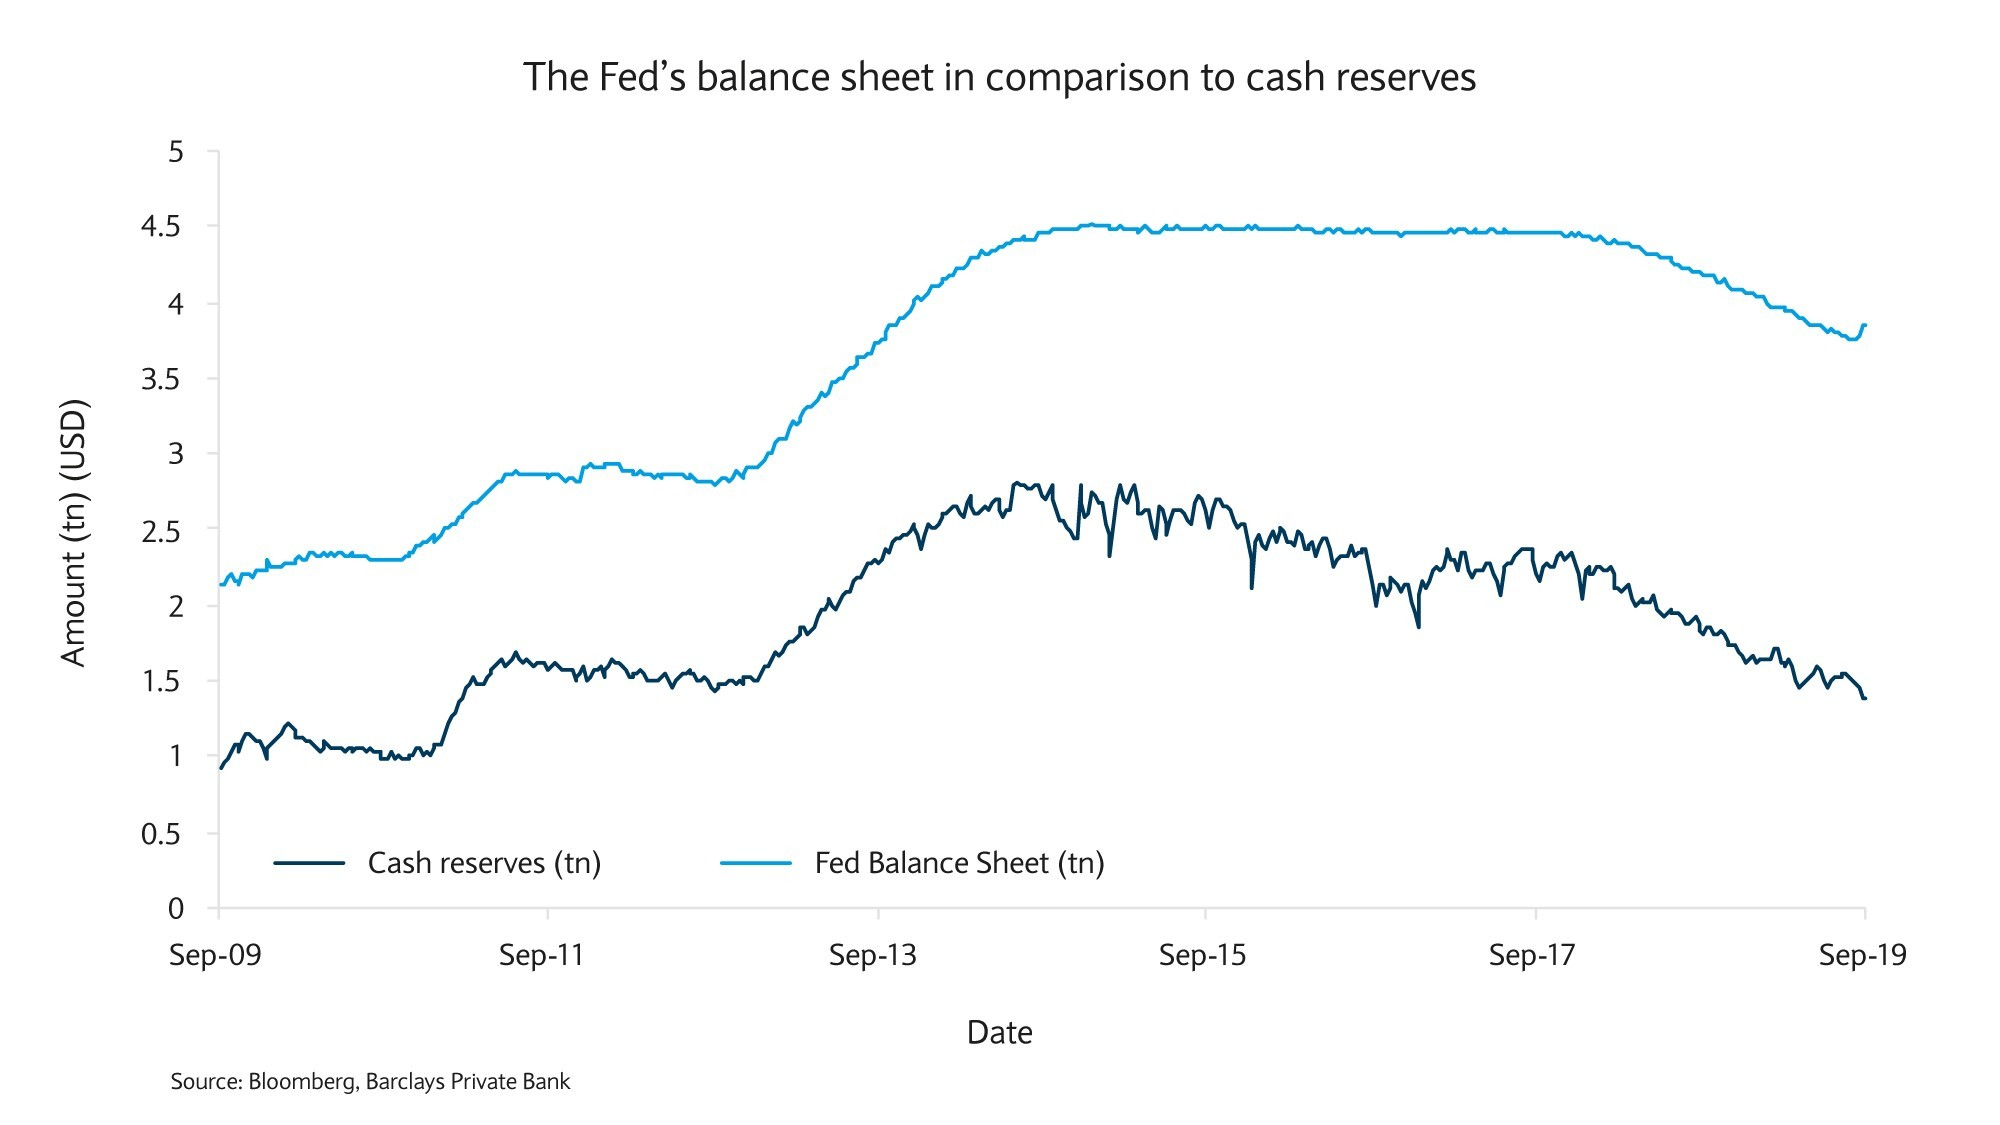 The Fed's balance sheet in comparison to cash reserves